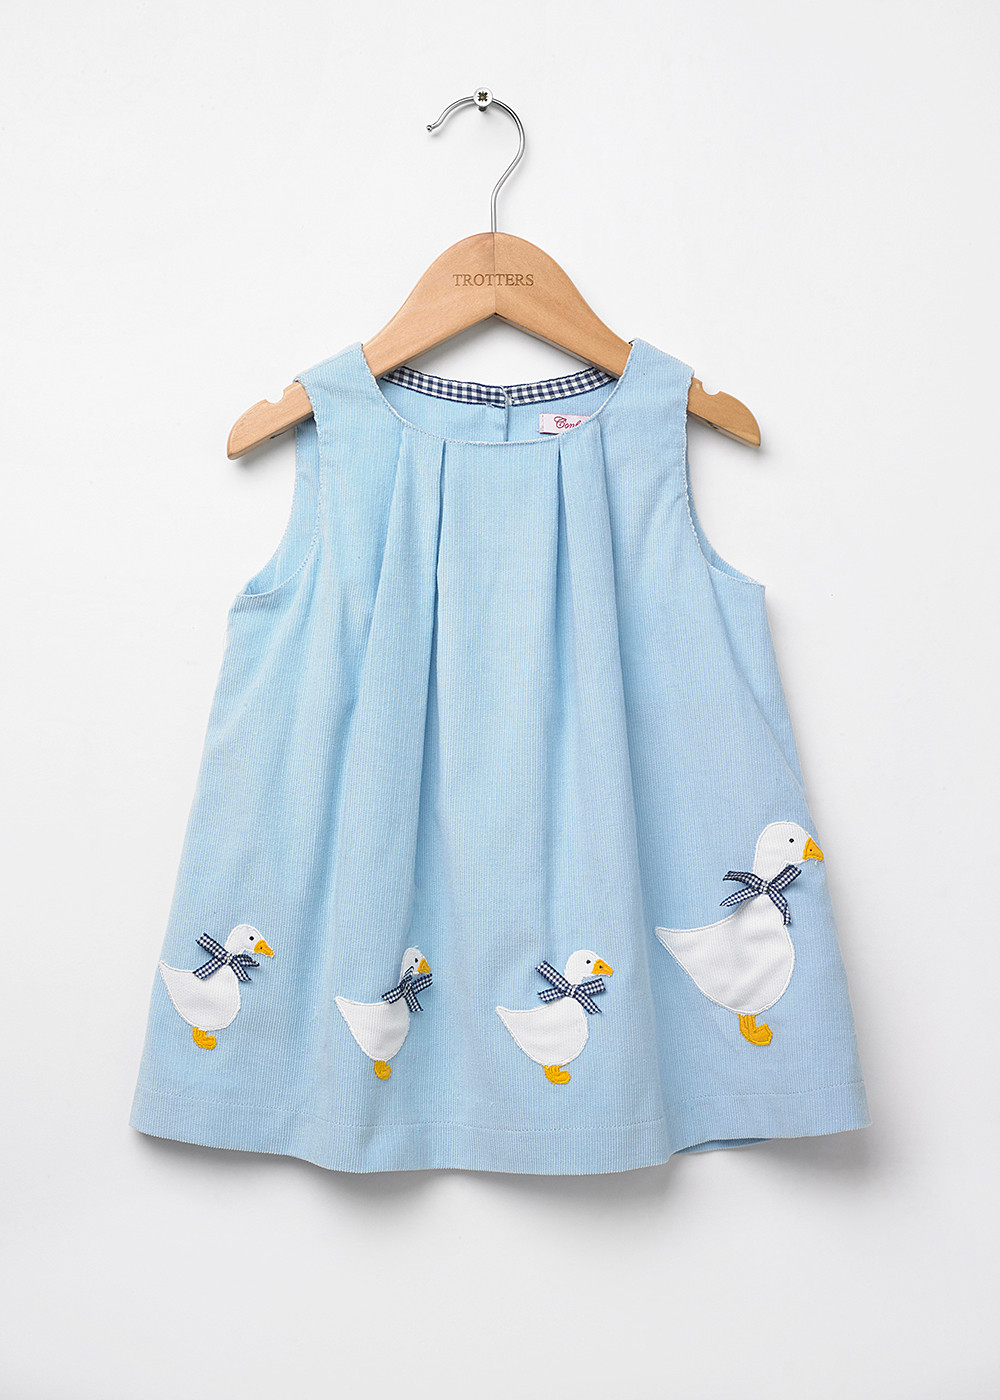 blue children's fashion dress, shot on a hanger at RGB Digital studio's, Acton, West London